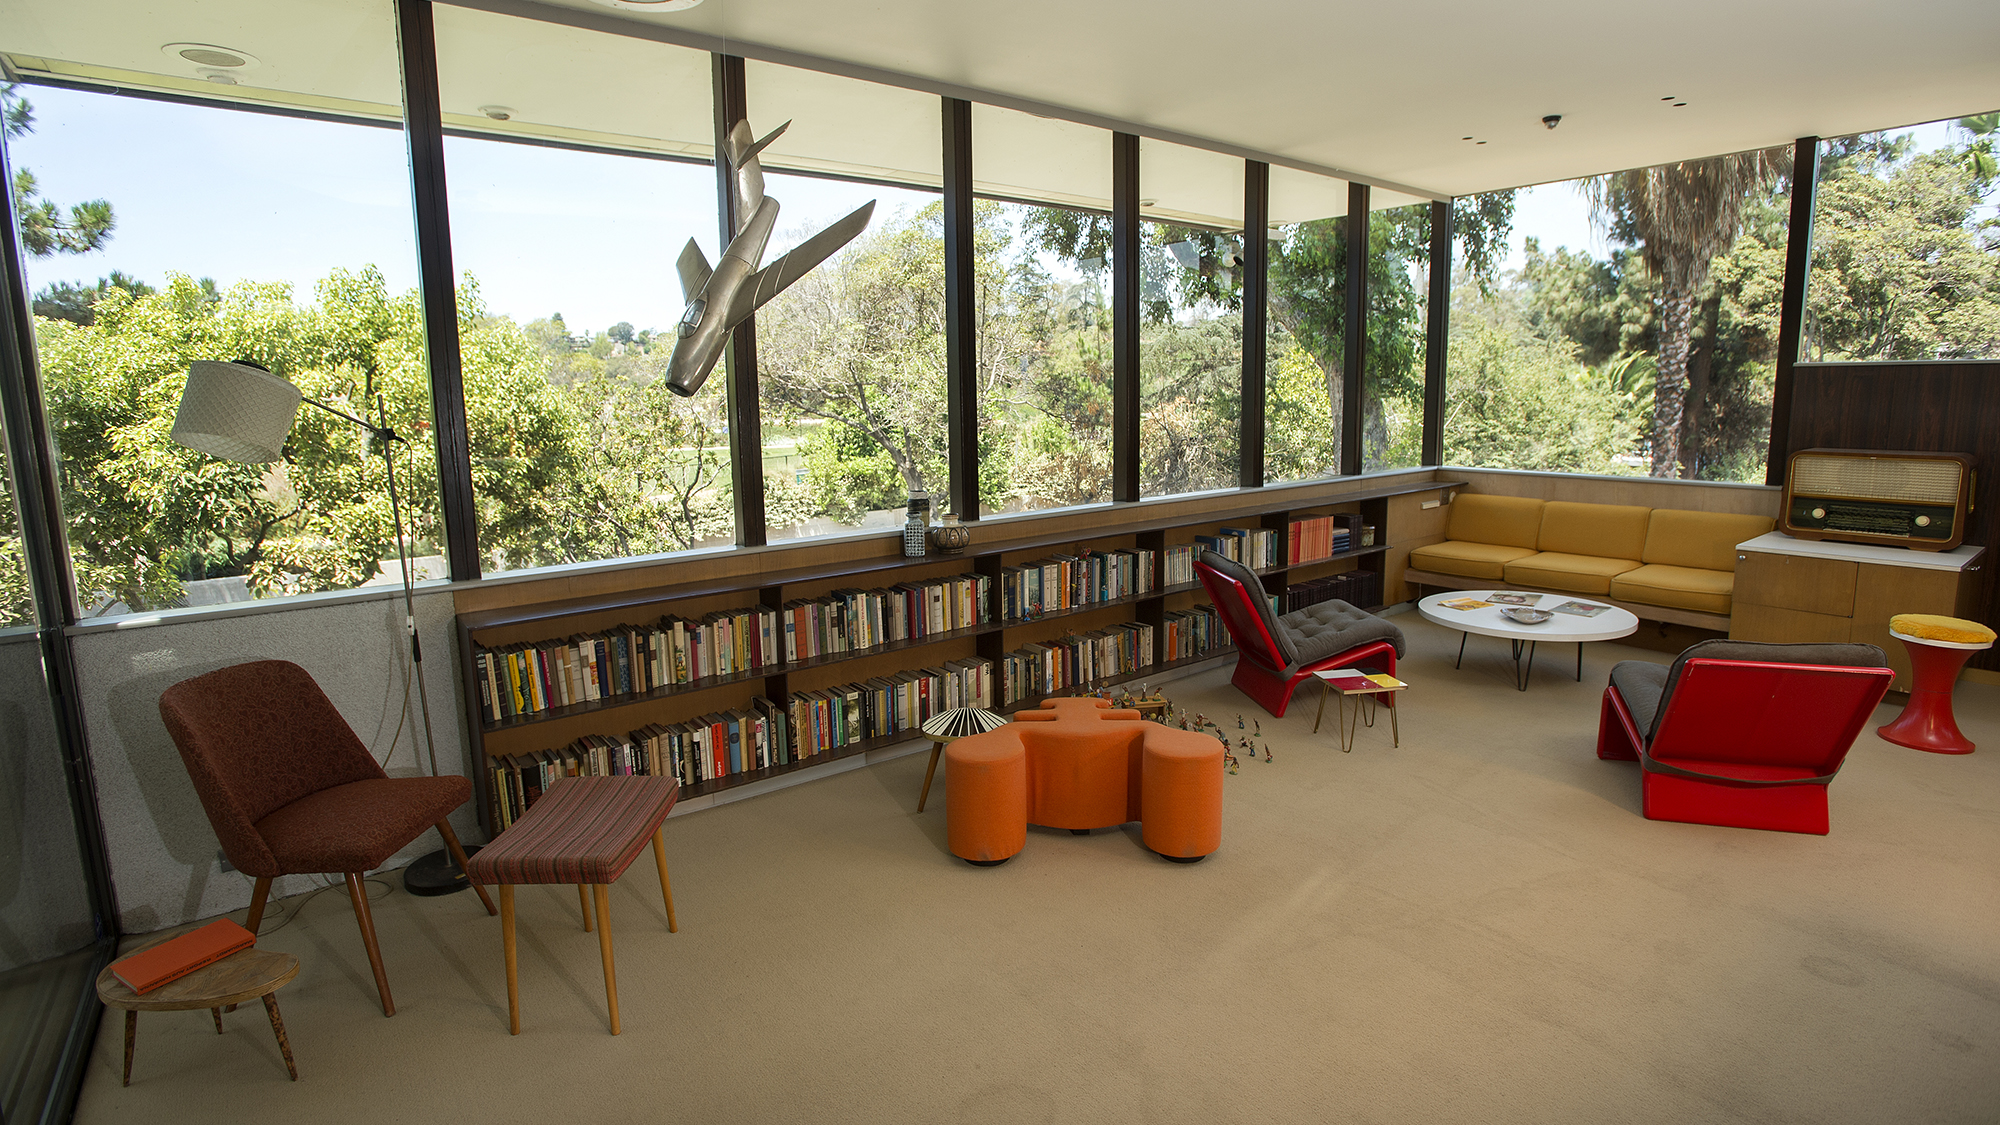 An interior view of the A front view of the Neutra VDL Studio and Residences.